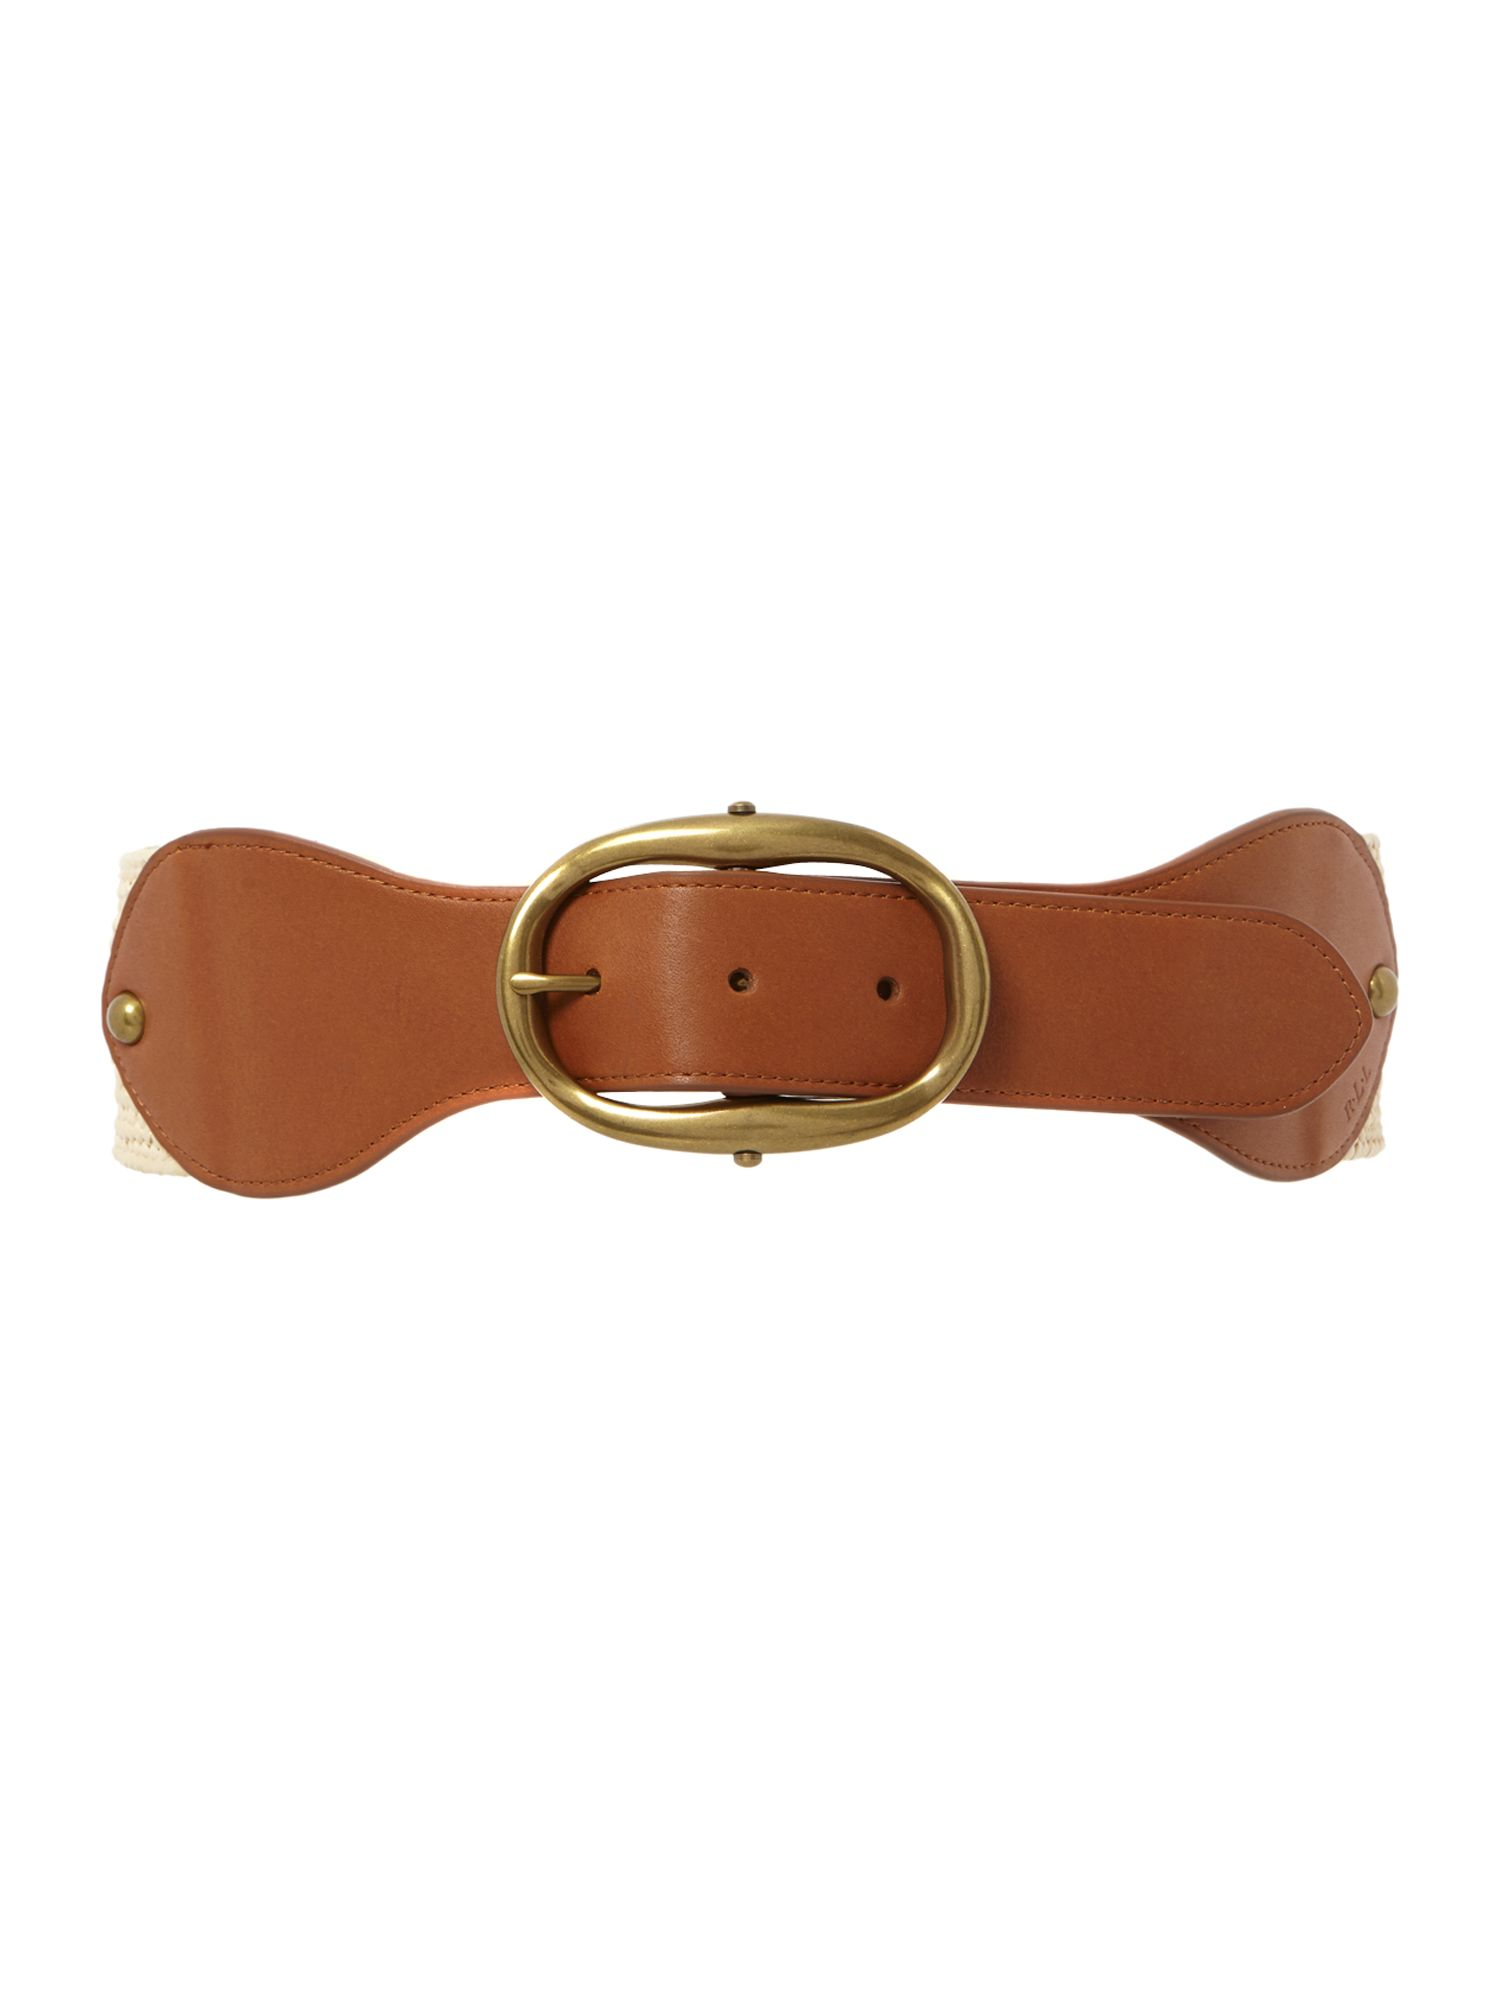 Stretch jute interlock belt